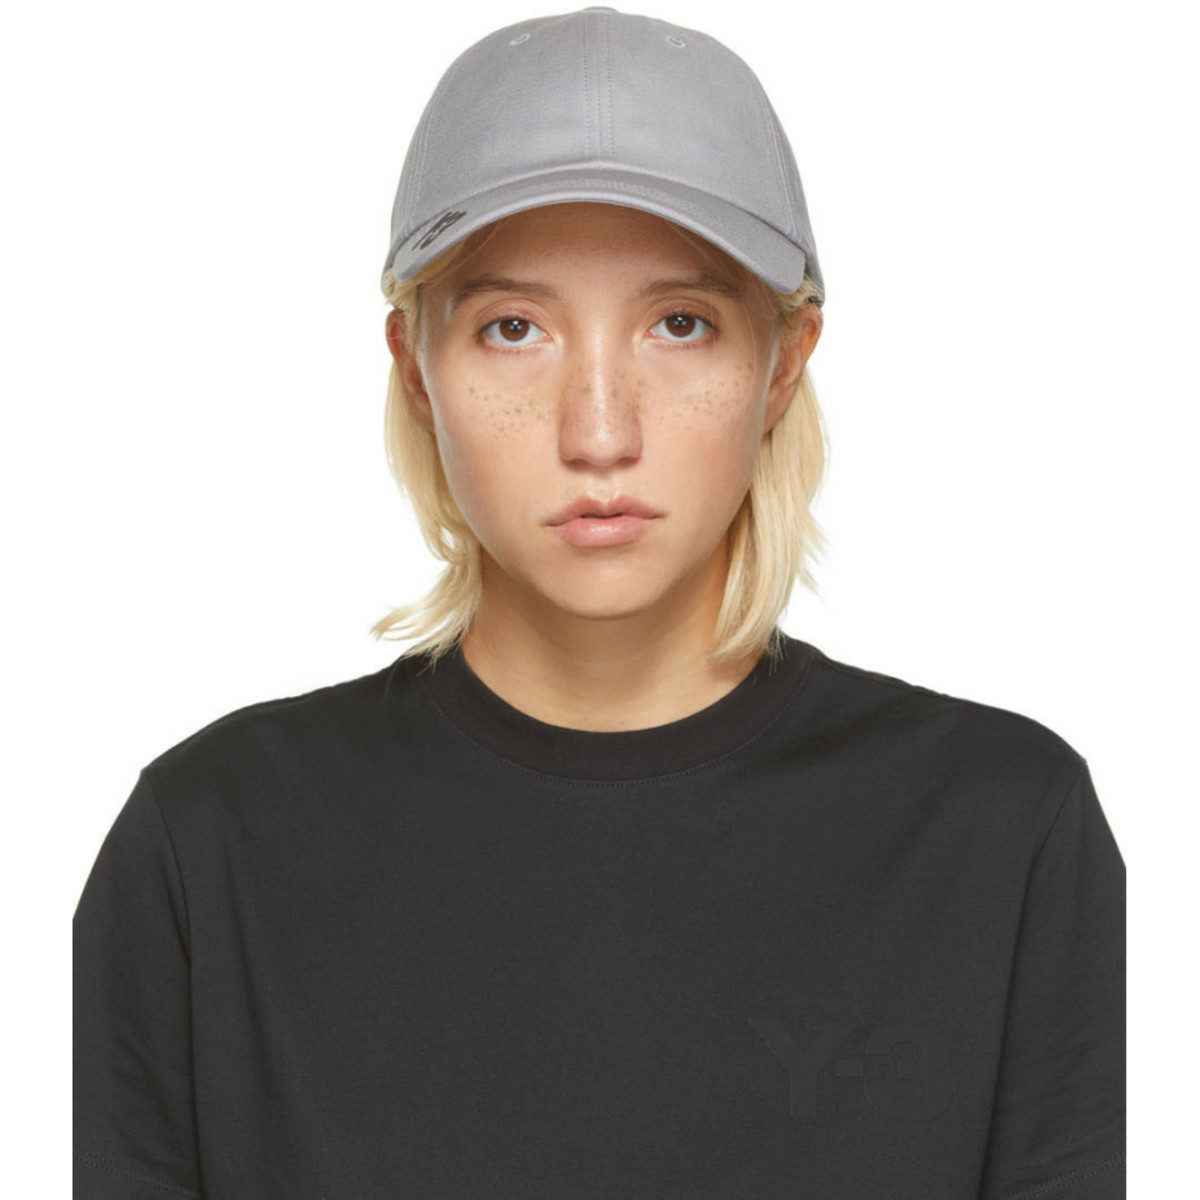 Women ACCESSORIES - GOOFASH - Womens CAPS